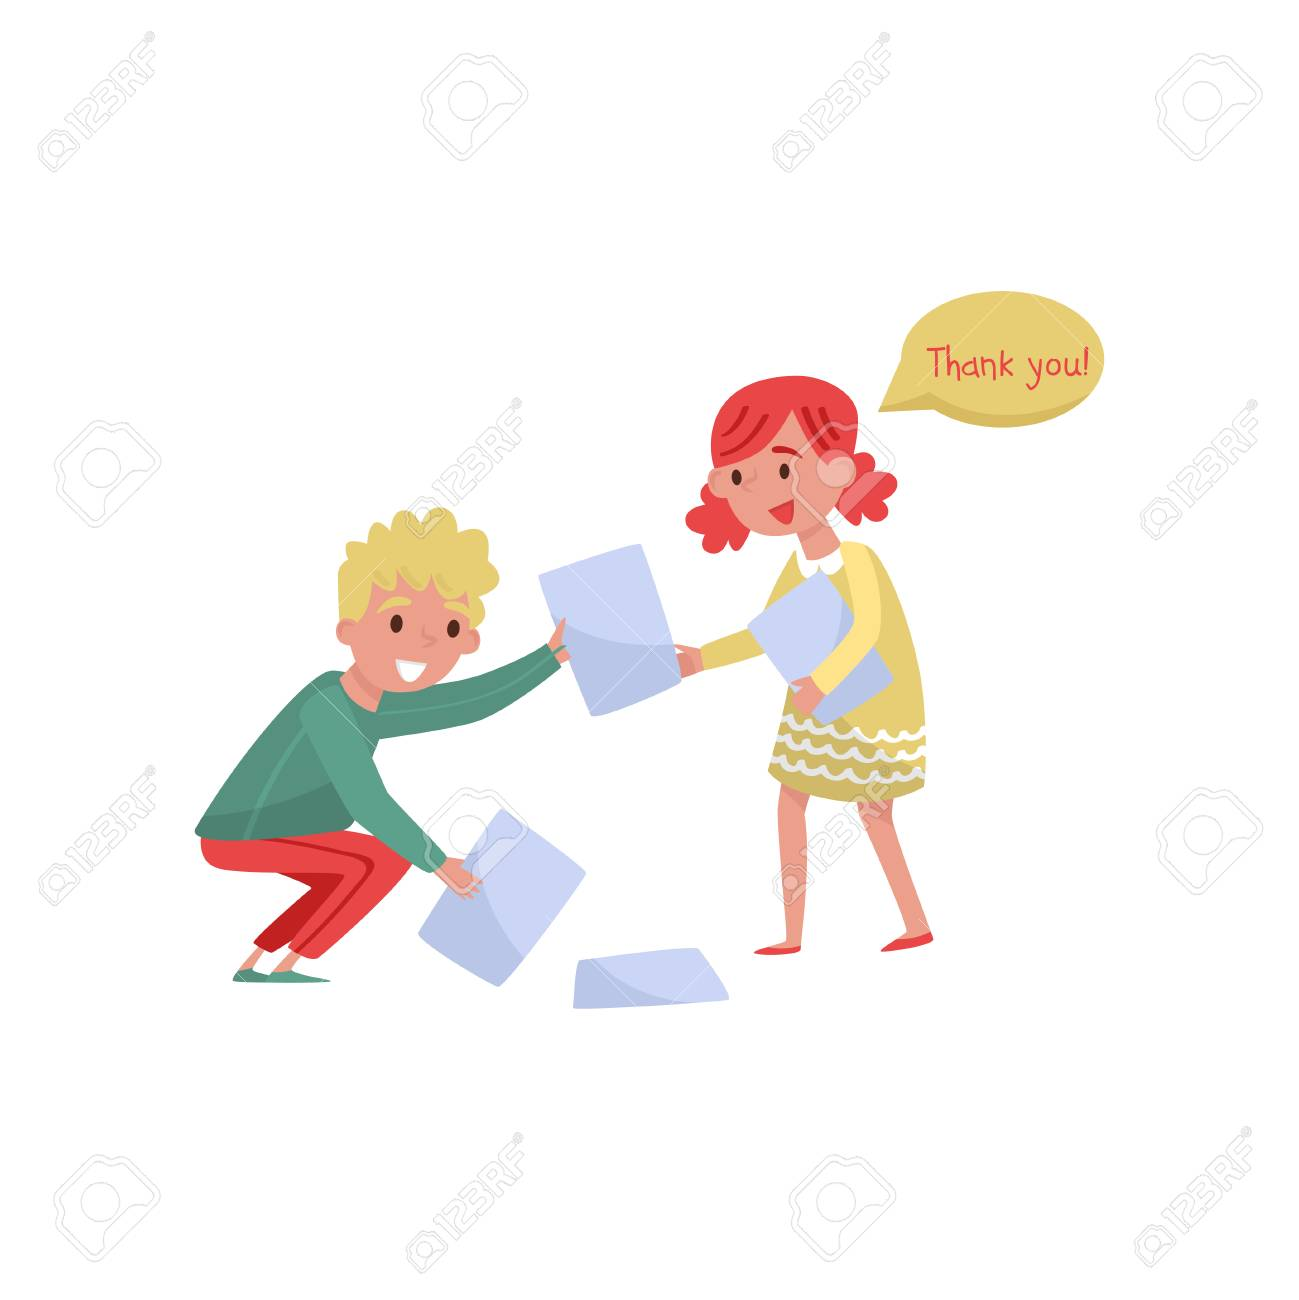 Smiling boy helping girl to picking up paper from the floor.